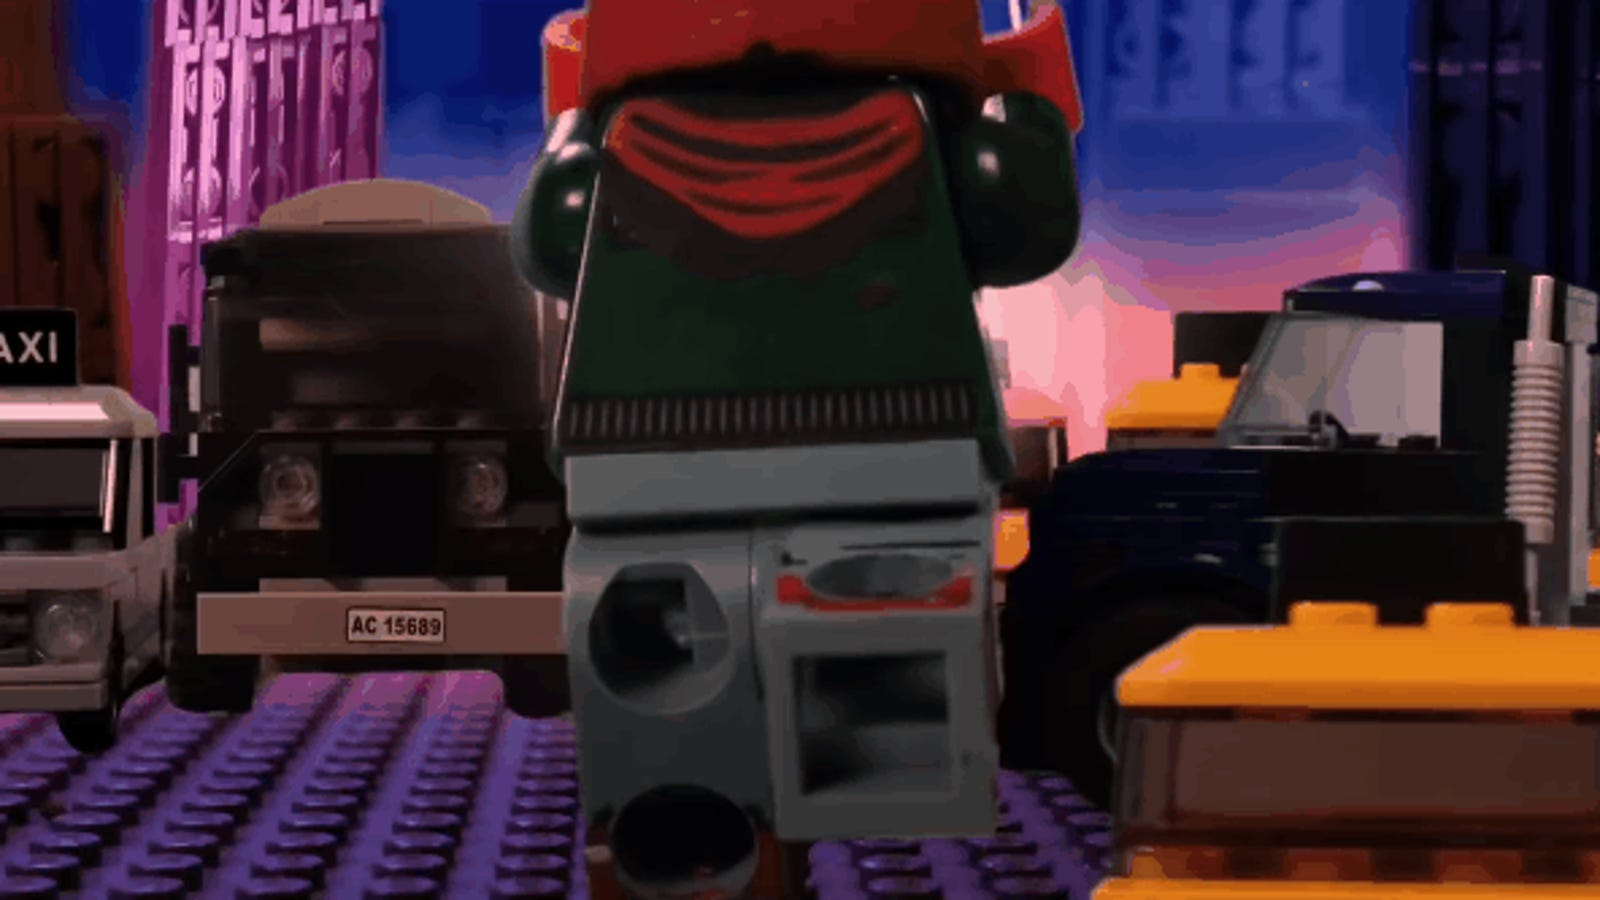 Spider-Man: Into the Spider-Verse's Most Triumphant Moment Still Rules in Lego Form